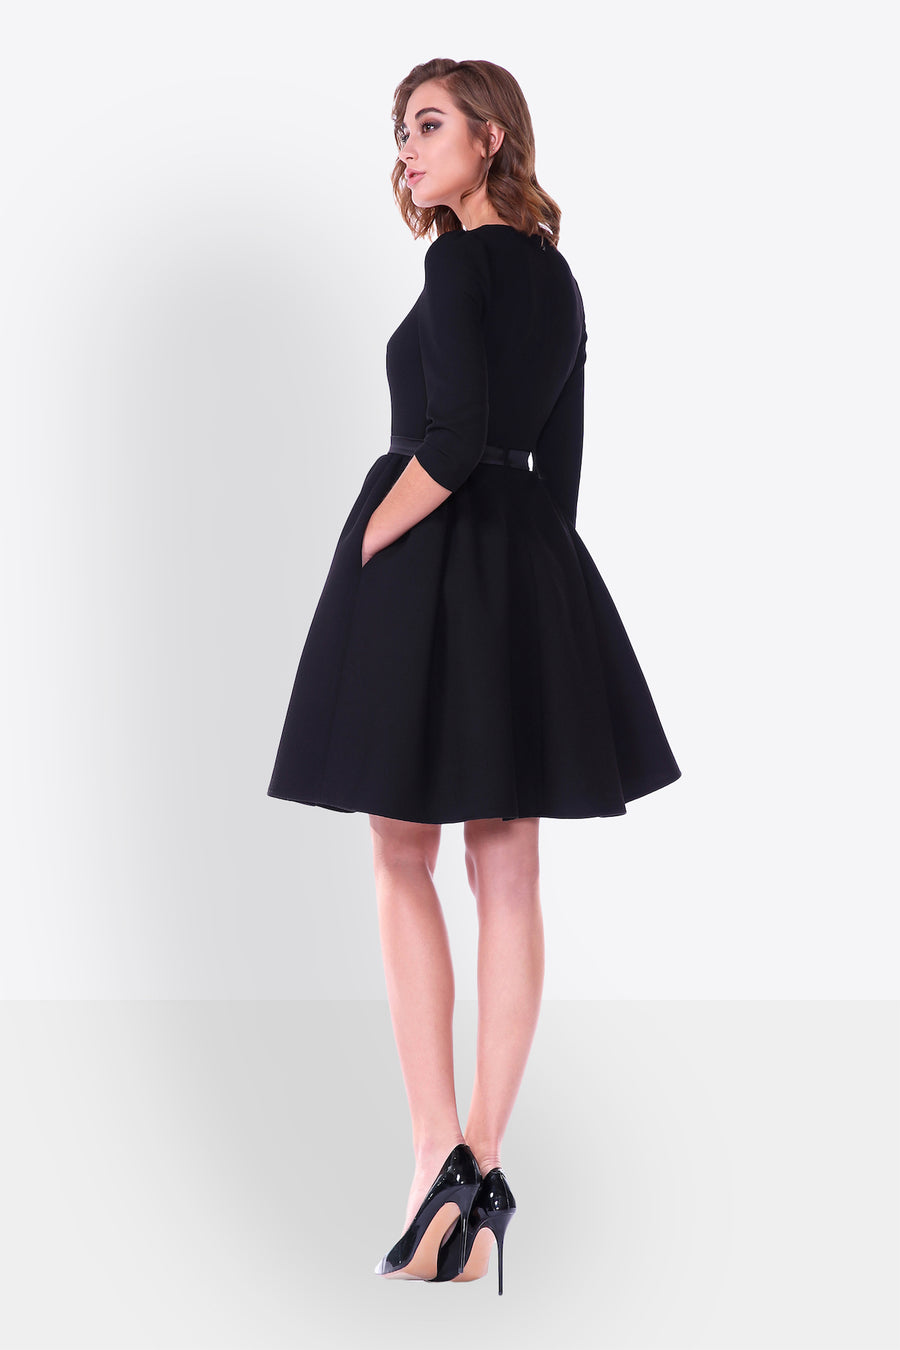 Sabrina Neck Fit and Flare Cocktail Dress